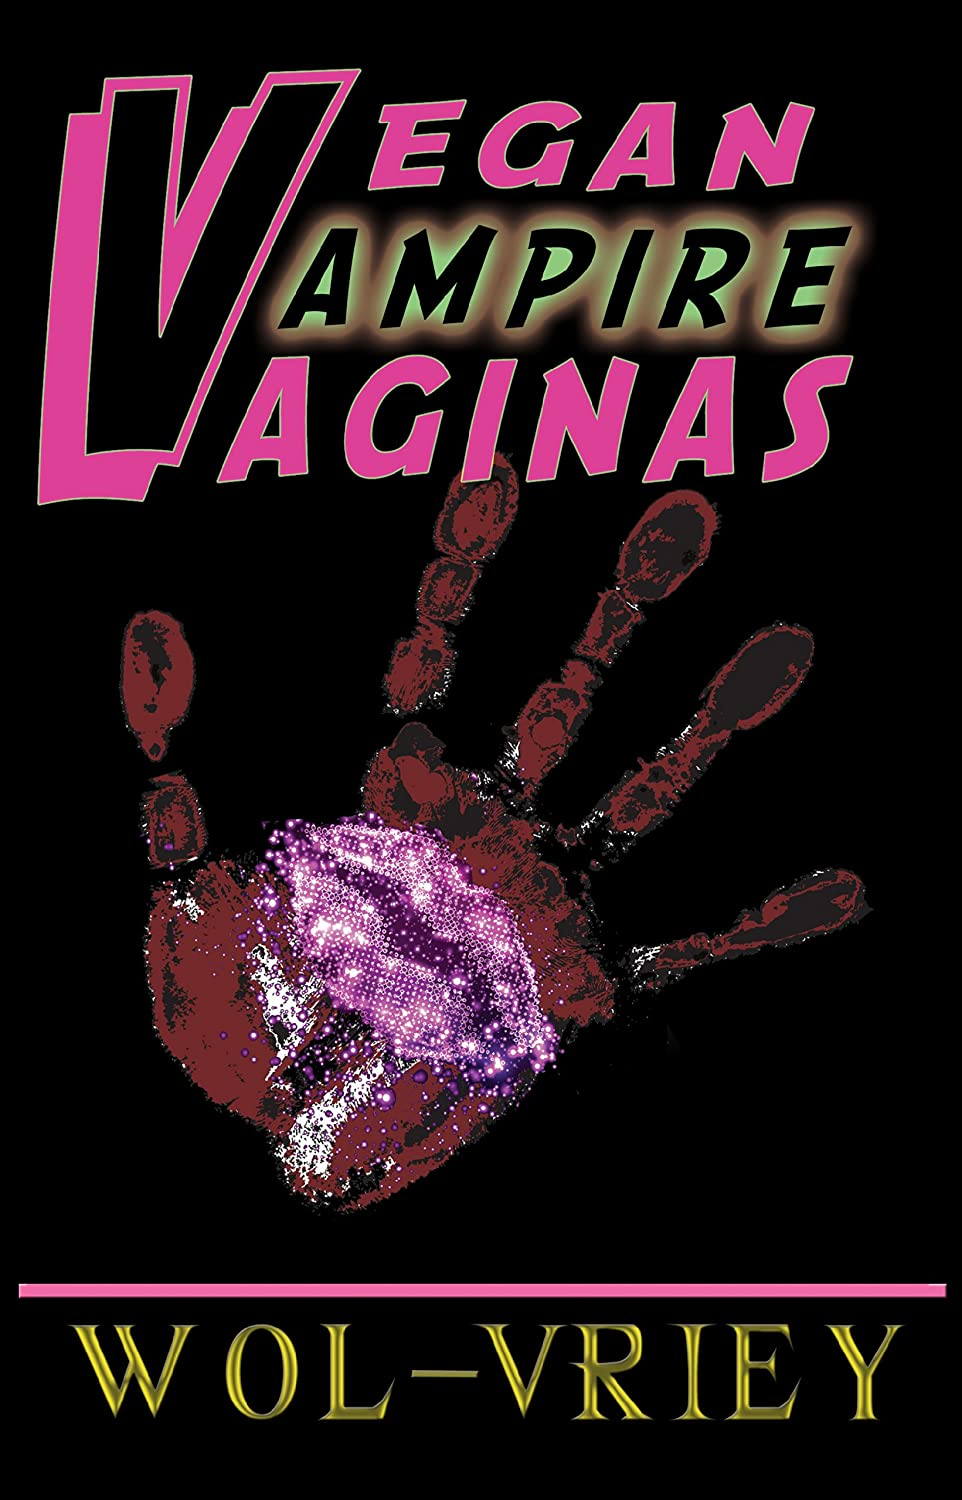 {Review} Vegan Vampire Vaginas by Wol-vriey